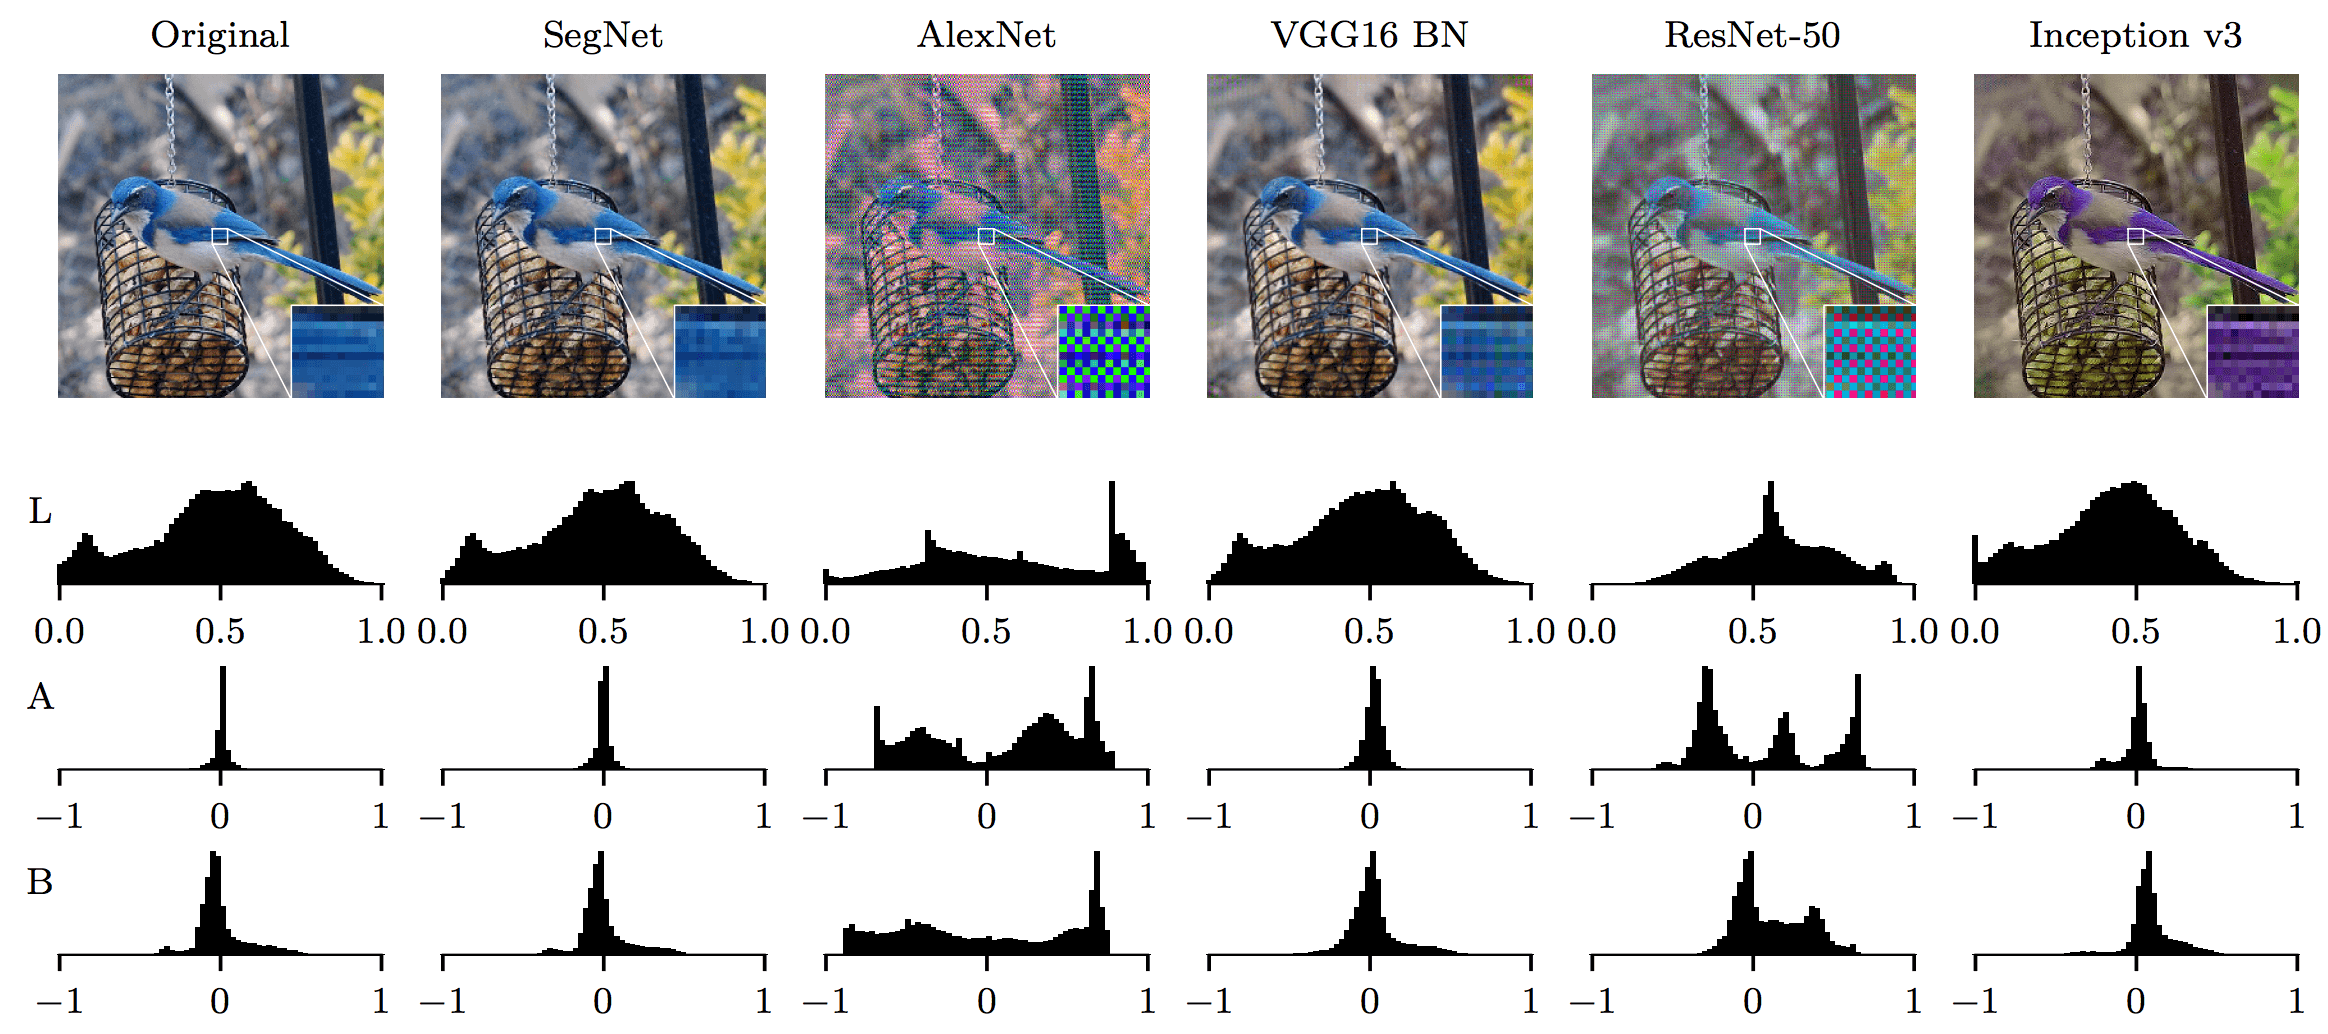 image reconstruction artifacts for SegNet, AlexNet, VGG16 BN, VGGNet, ResNet-50, Inception v3